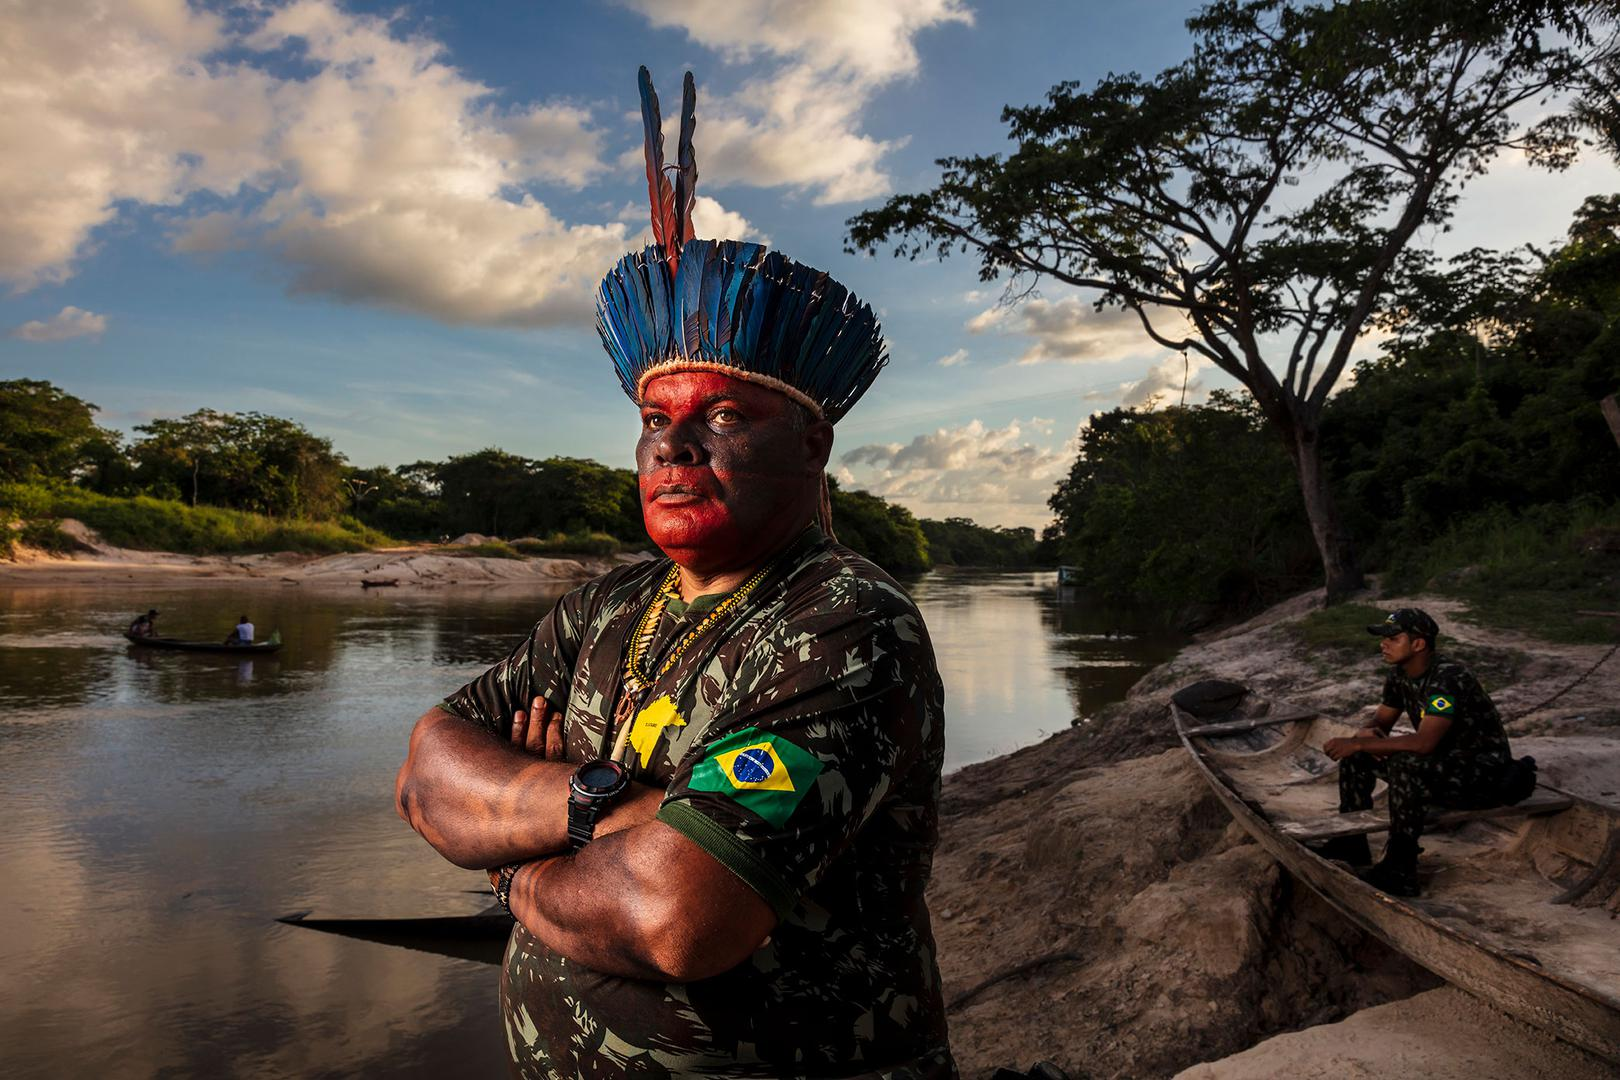 Cláudio José da Silva at the bank of the Pindaré river, in the Brazilian Amazon.